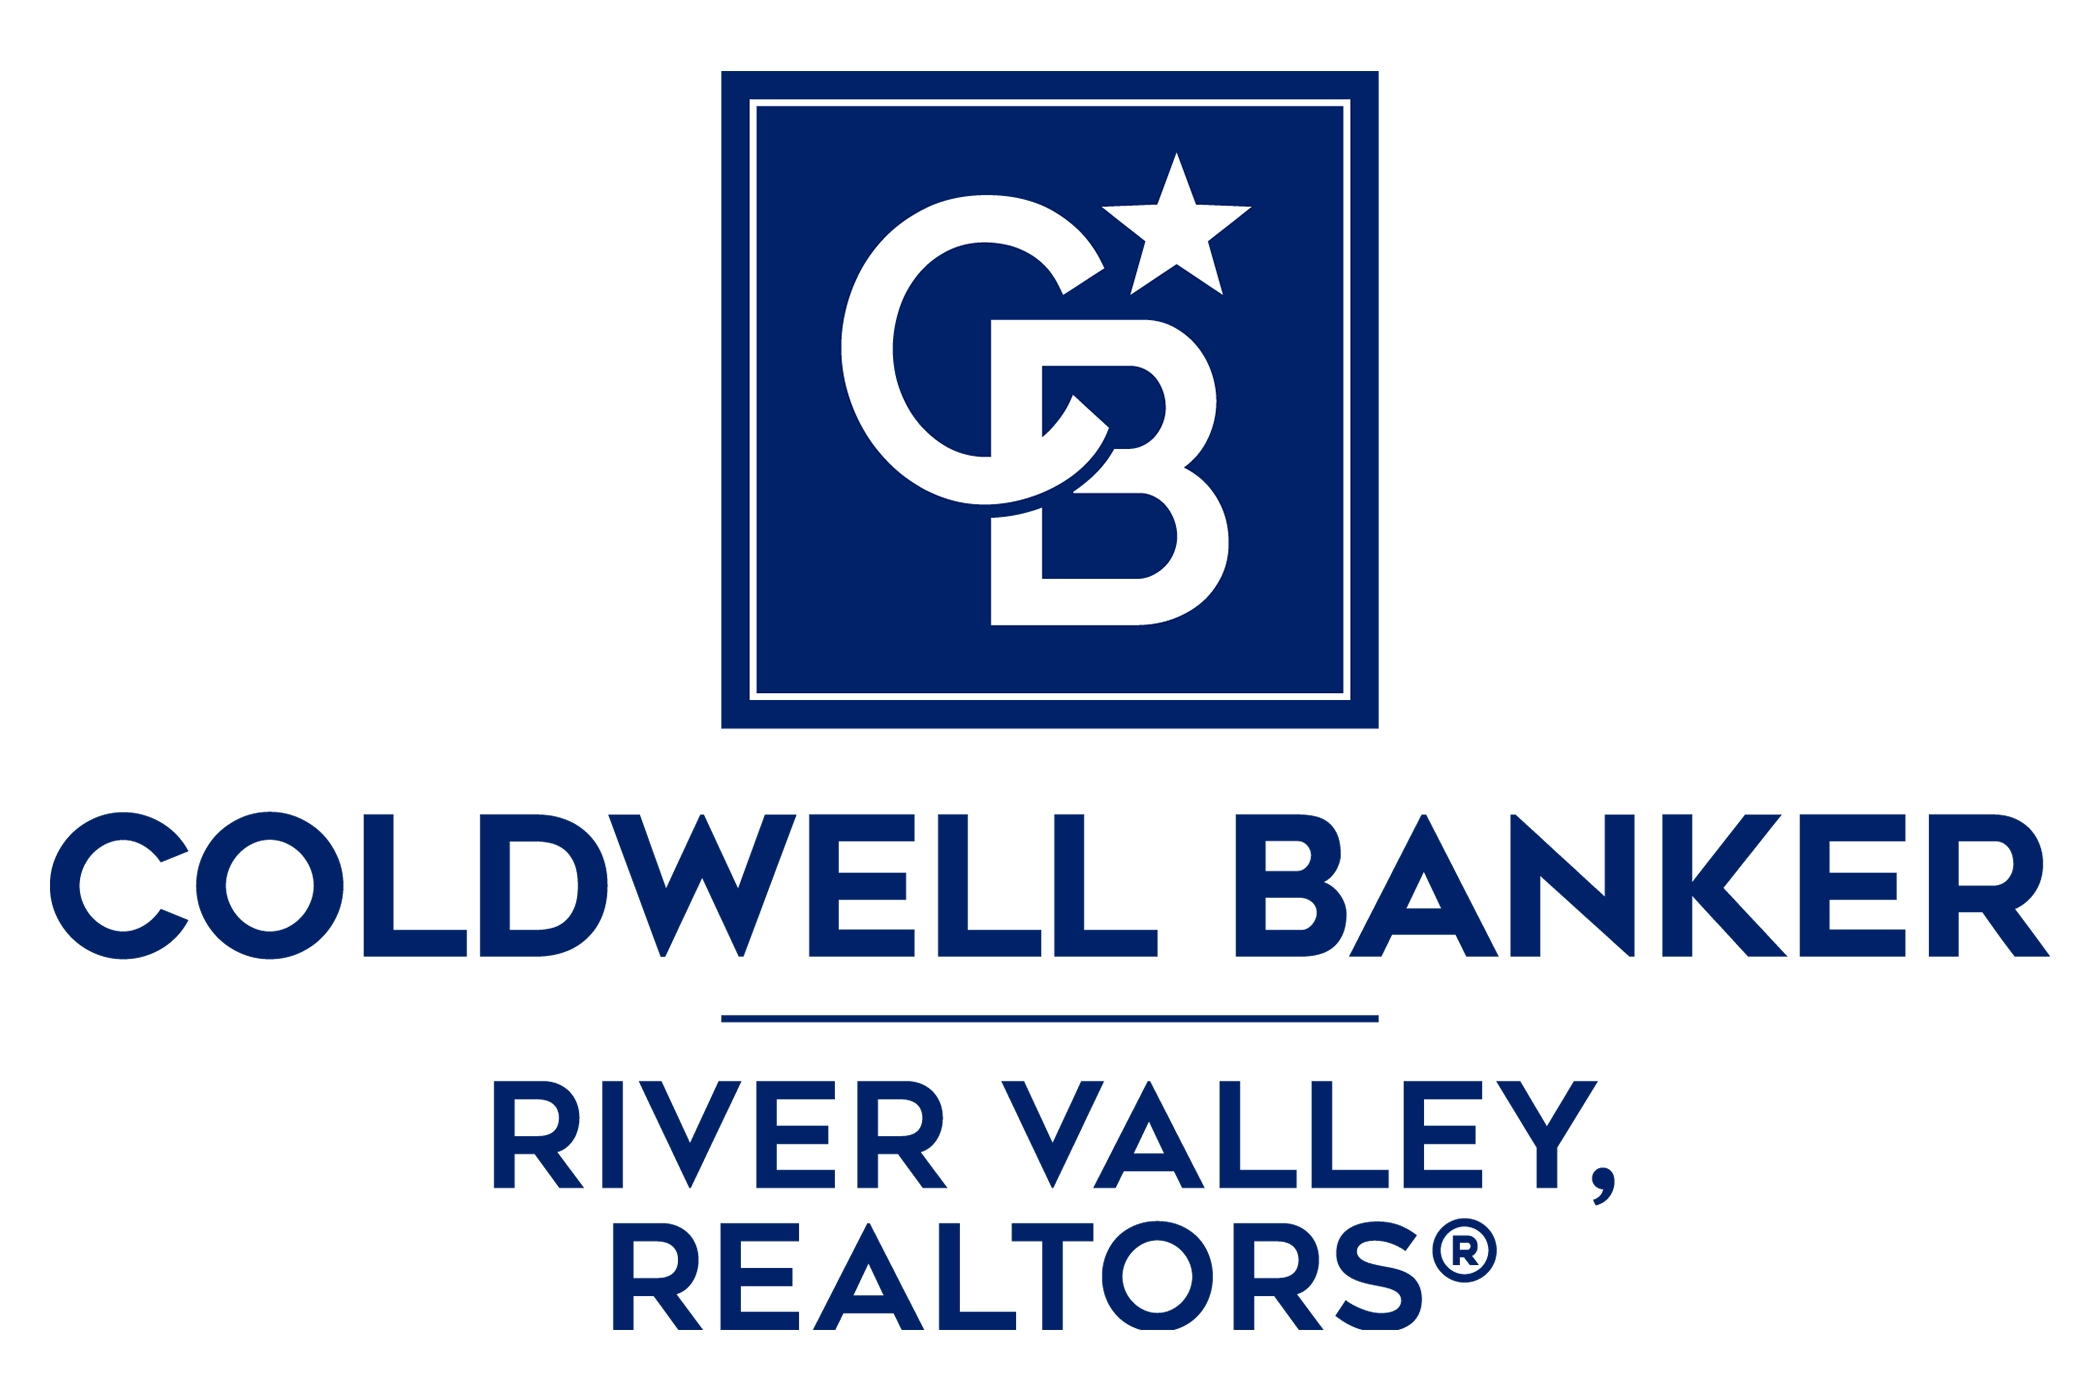 Mitch Rohloff - Coldwell Banker River Valley Realtors